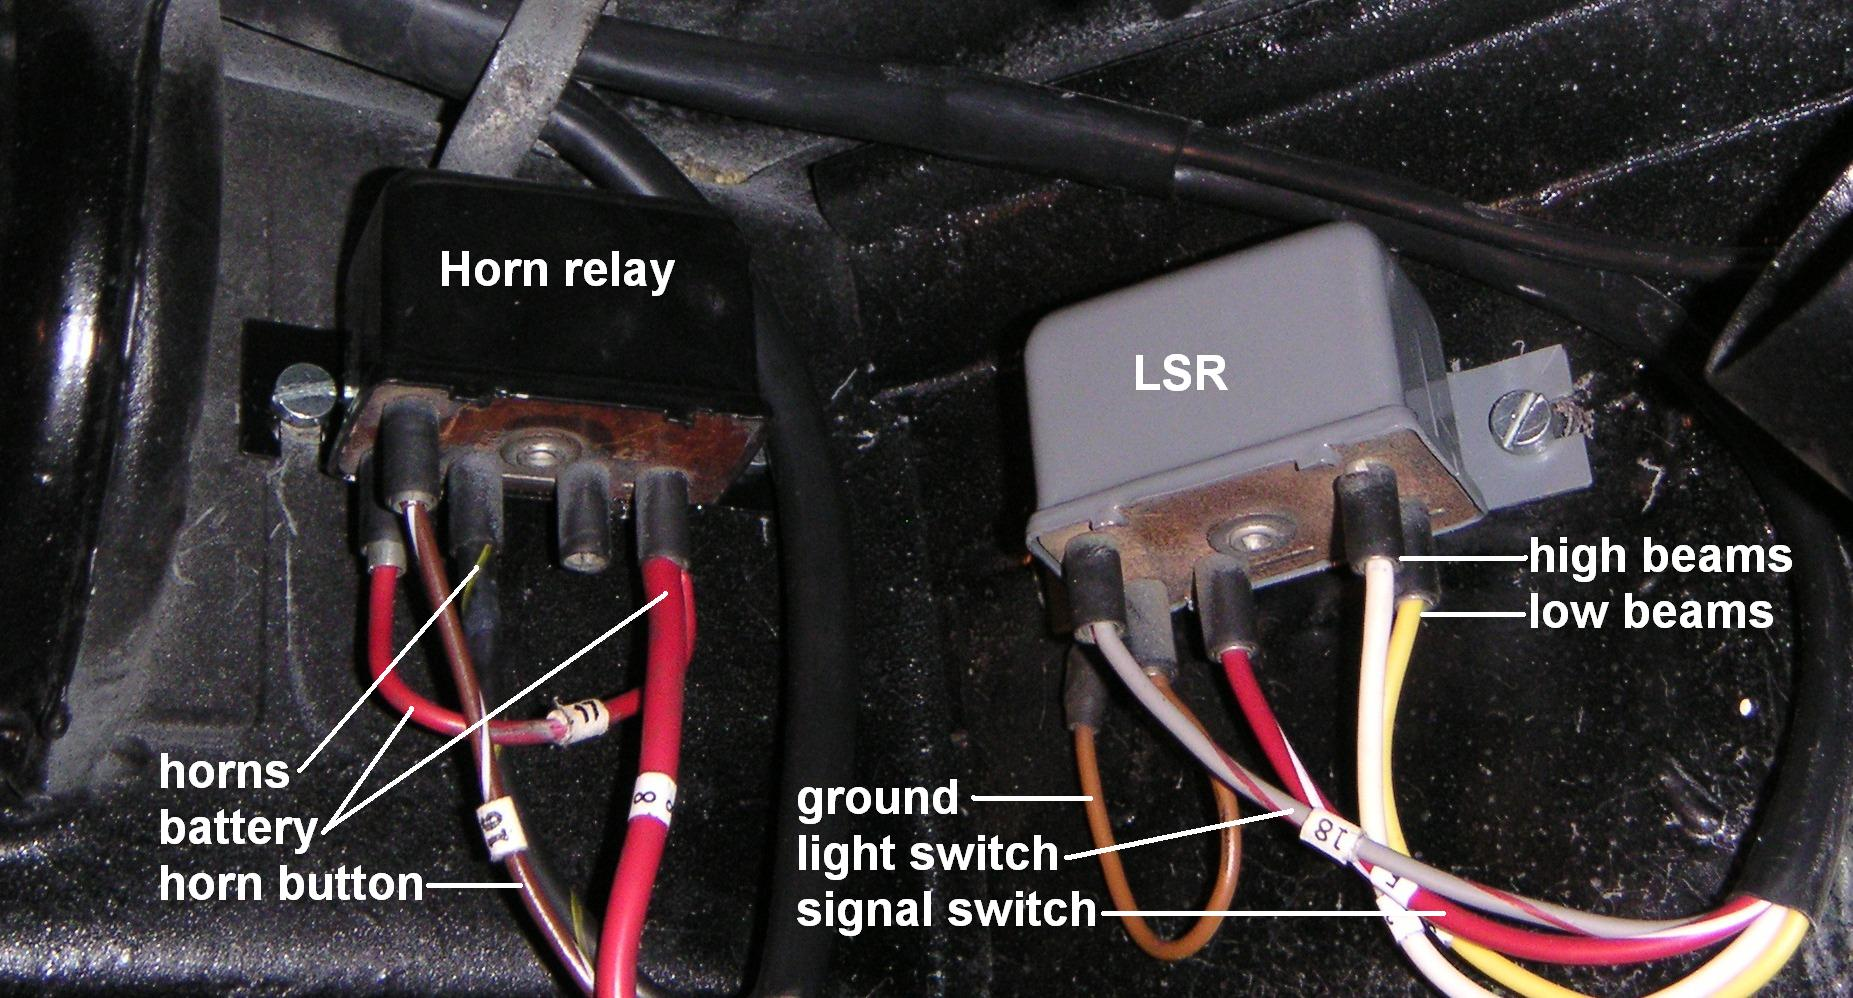 Technical midwest 356 club why do present day 356 owners install additional relays in their cars because the control switches on the 356 are expensive to replace because their ccuart